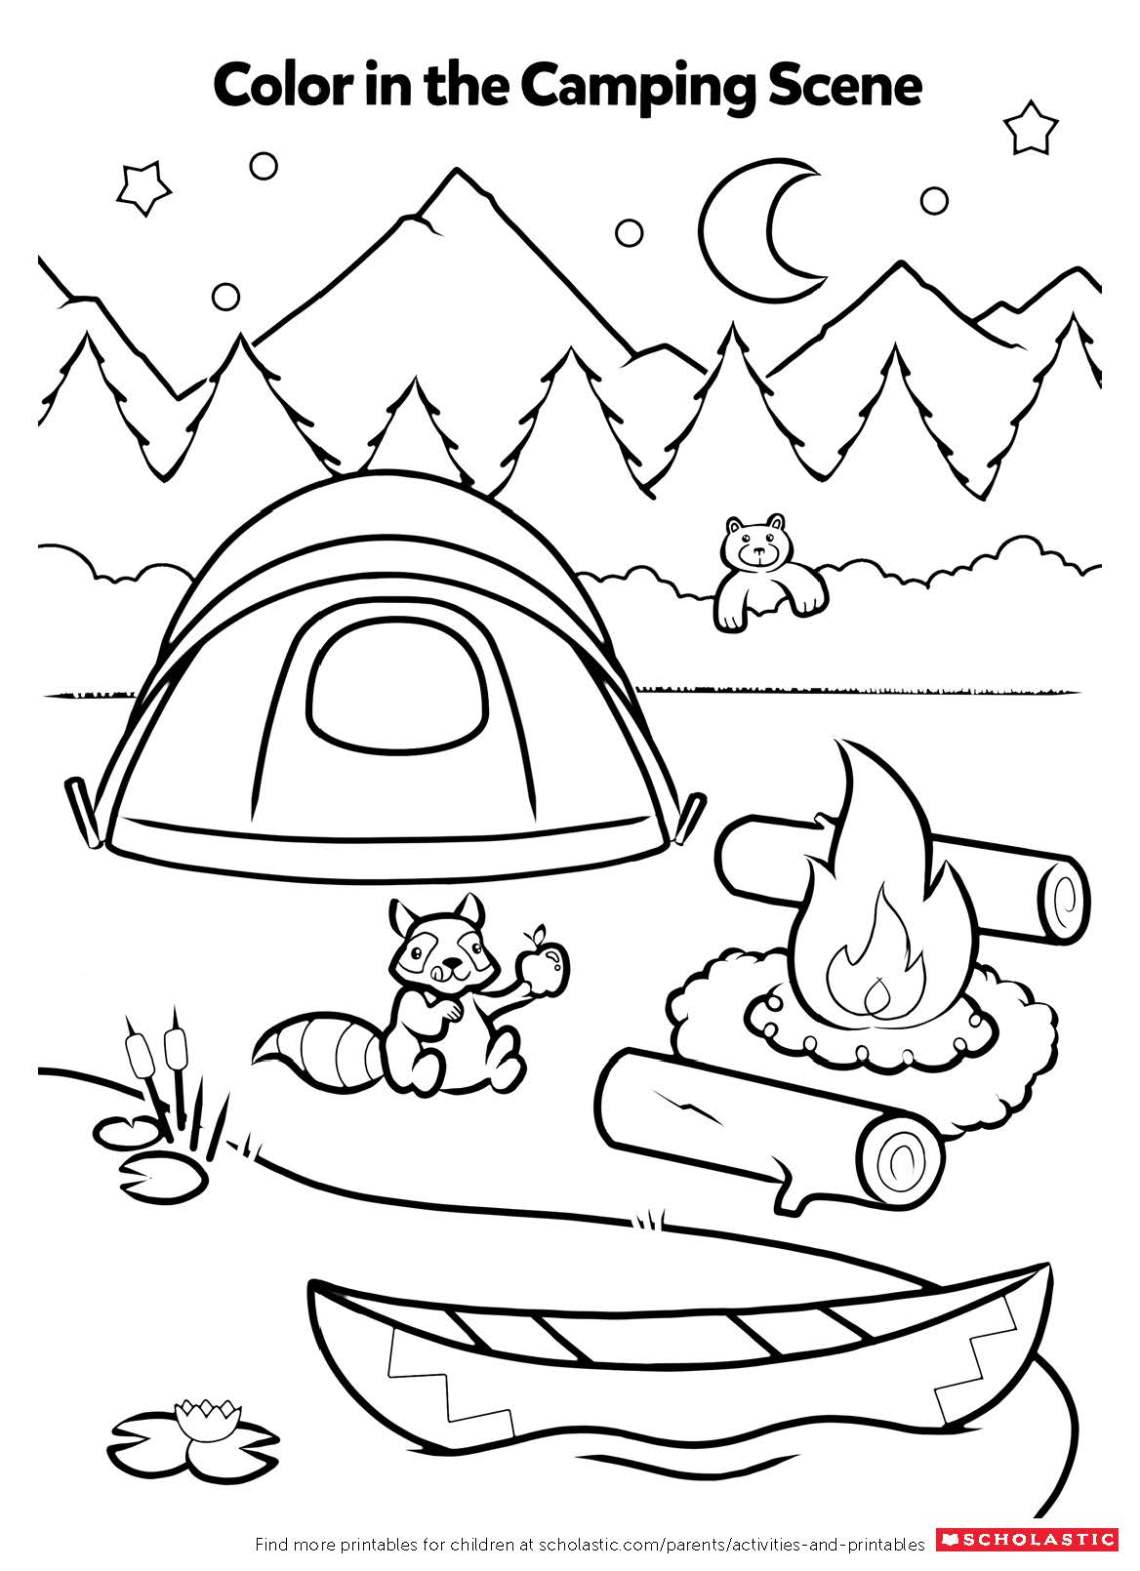 Campfire Coloring Activity | Worksheets & Printables ... | coloring sheets for toddlers